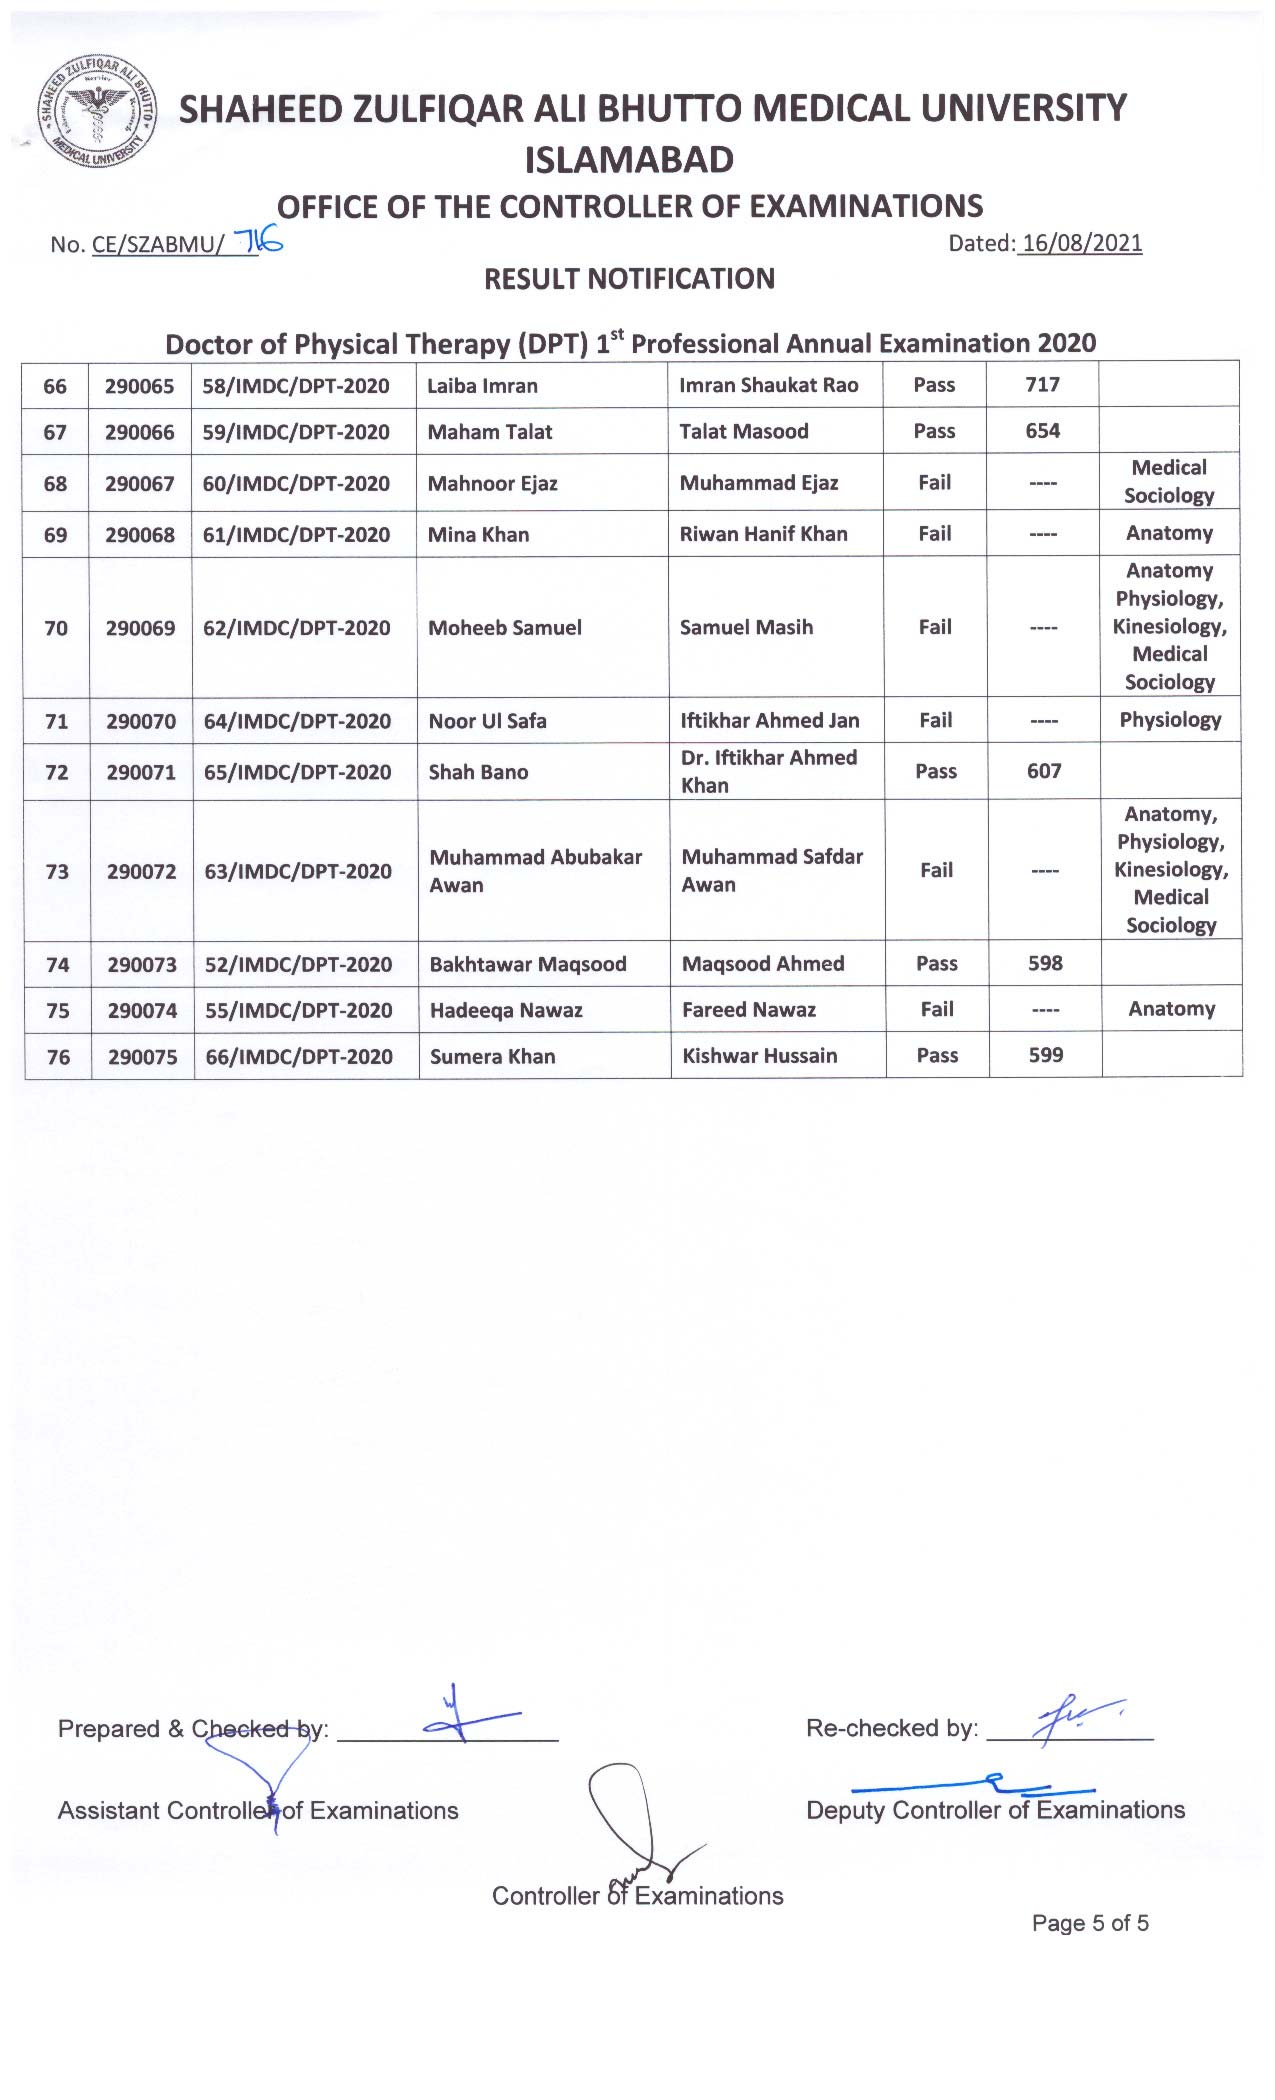 Result Notification - DPT 1st Professional Annual Examination 2020